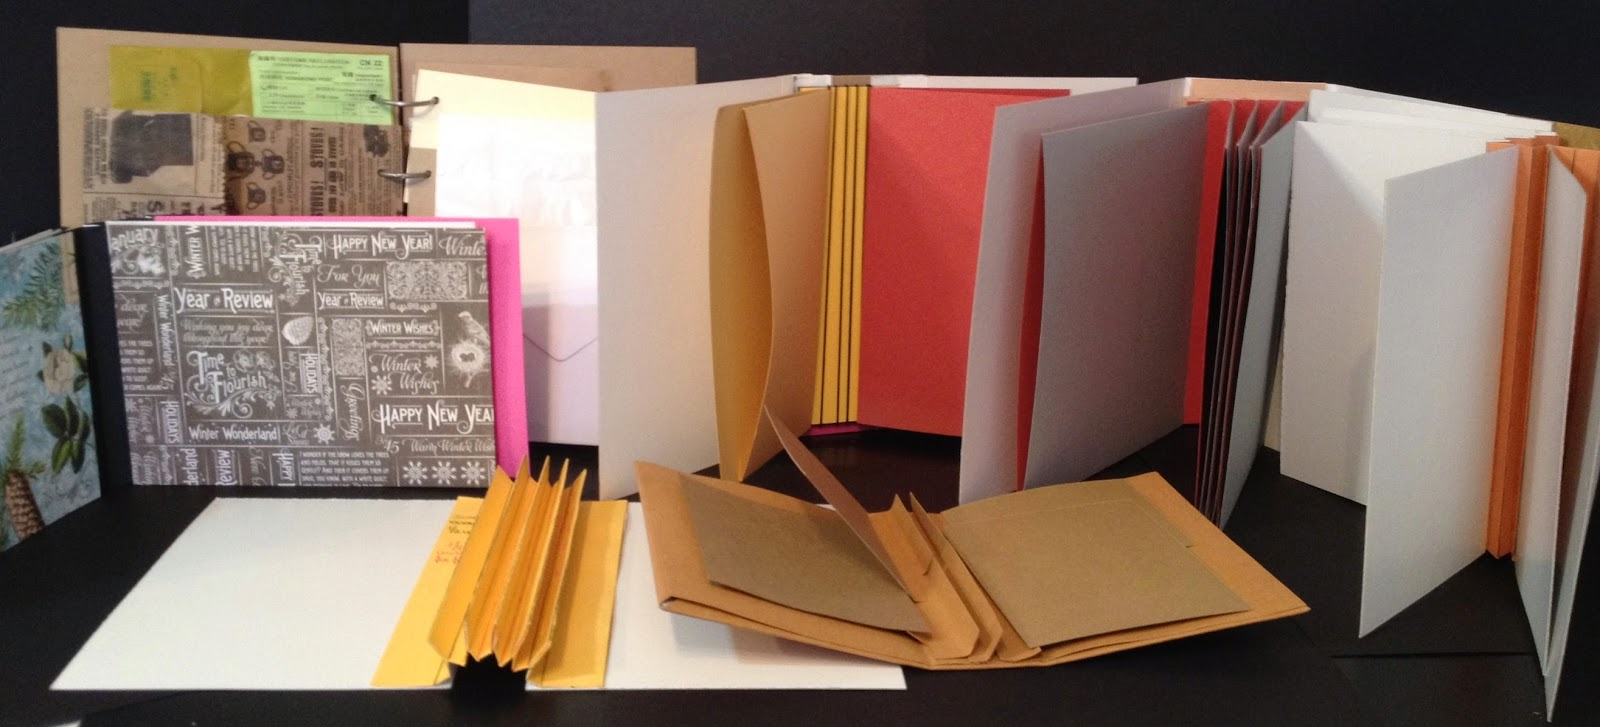 How To Make A Book Cover Look D In Photo : Annes papercreations some info about upcoming